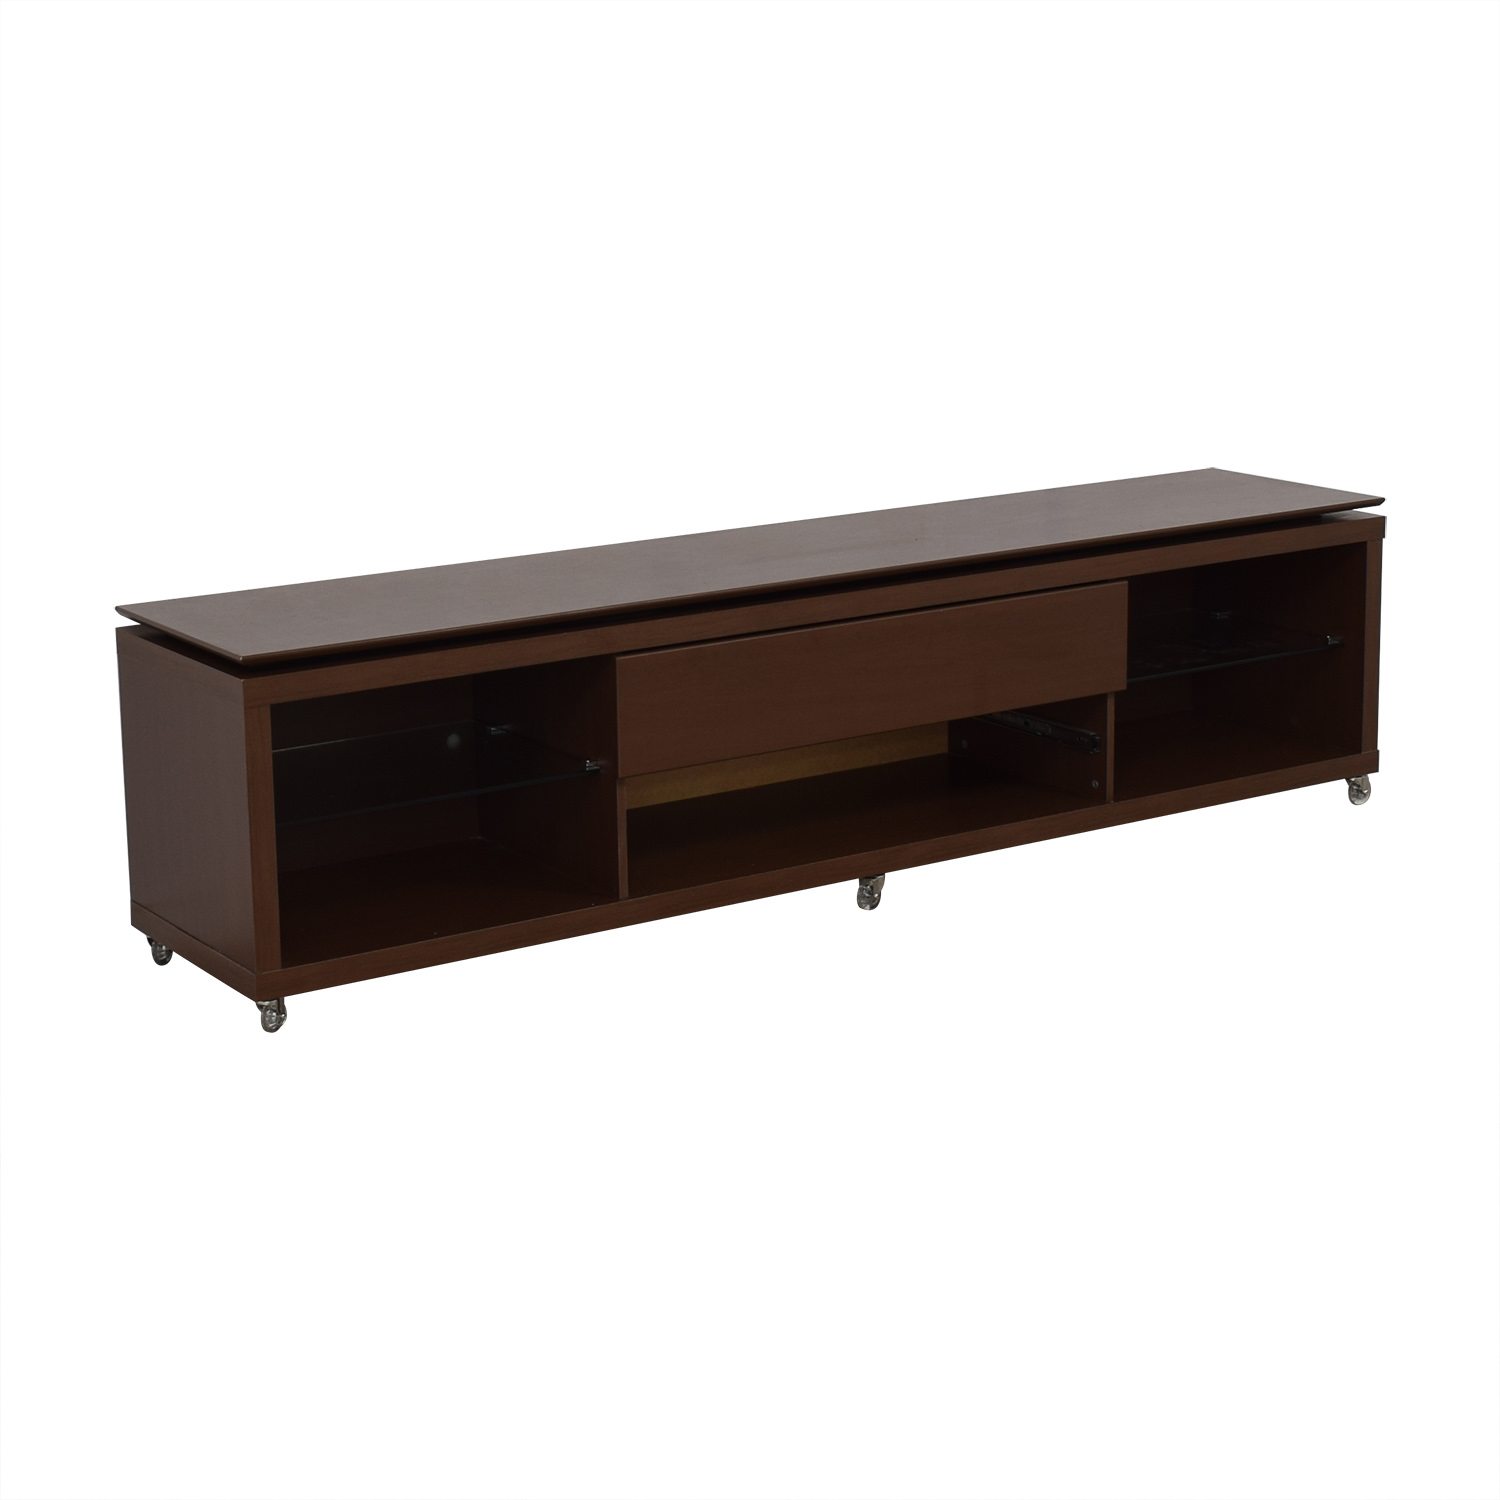 Bed Bath & Beyond Bed Bath & Beyond Manhattan Comfort Lincoln Media Stand nj